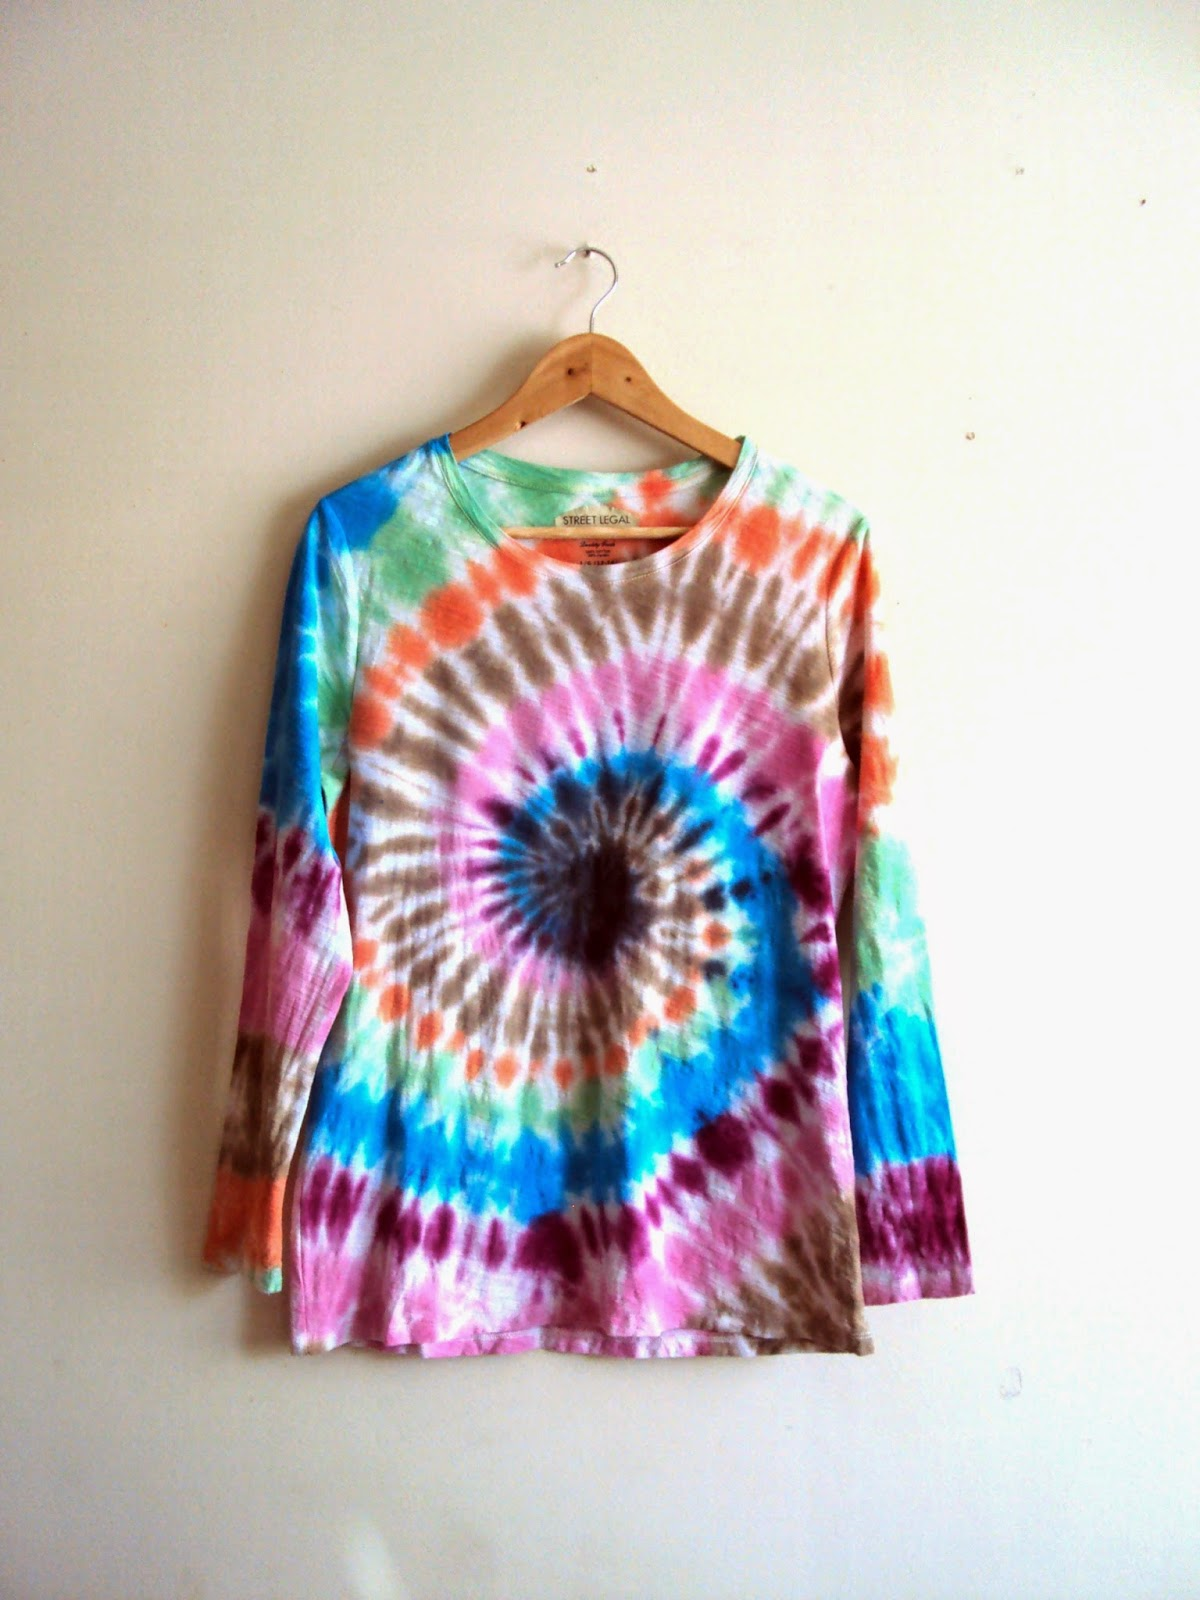 https://www.etsy.com/listing/223318543/pastel-dreams-yoga-top-swirl-tie-dye?ref=shop_home_feat_3